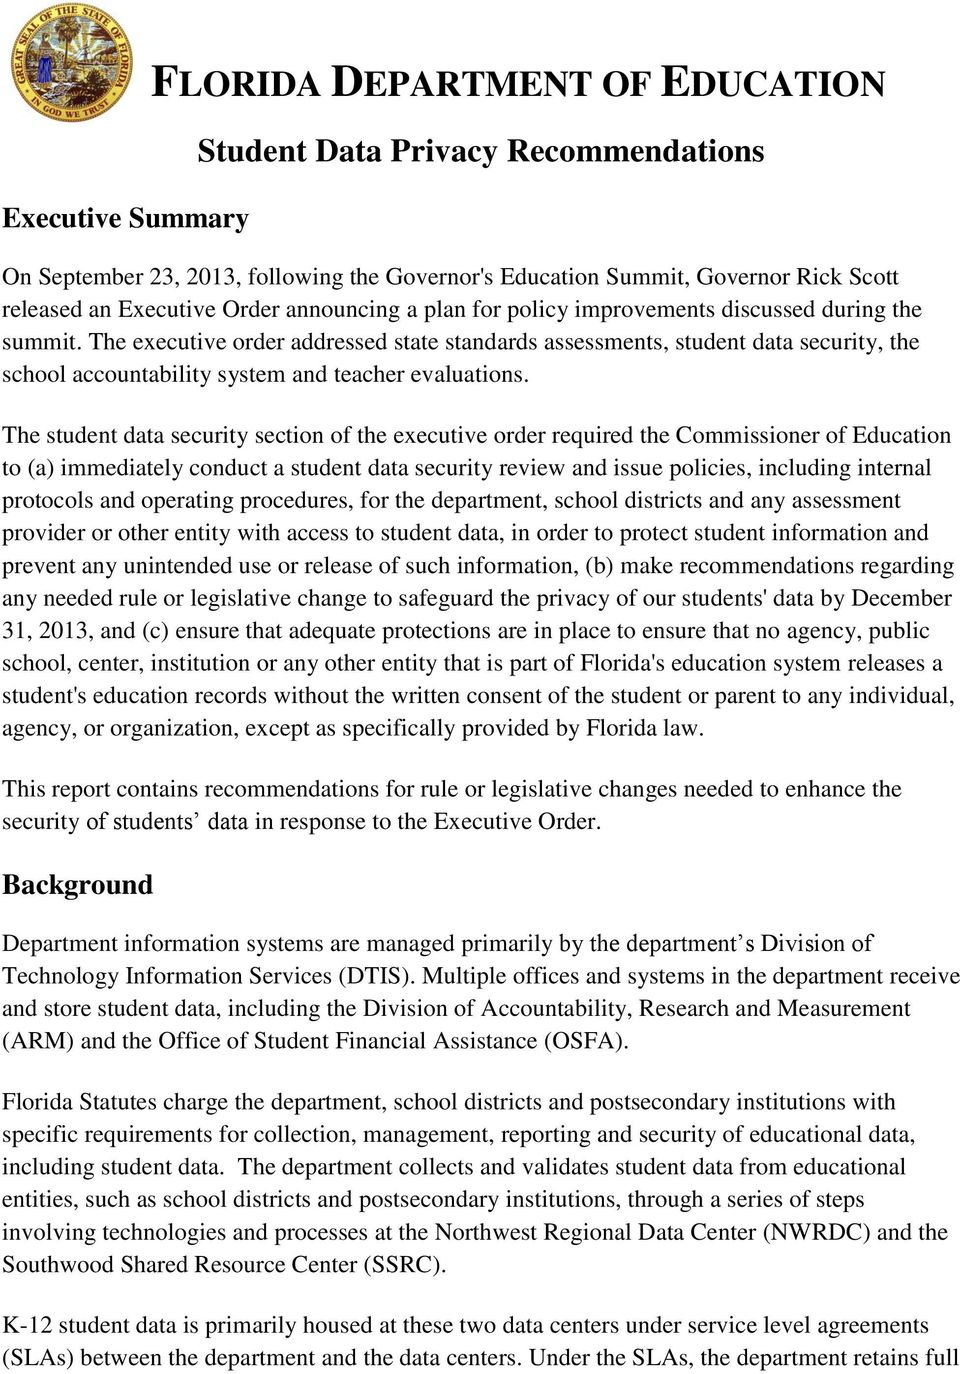 The student data security section of the executive order required the Commissioner of Education to (a) immediately conduct a student data security review and issue policies, including internal